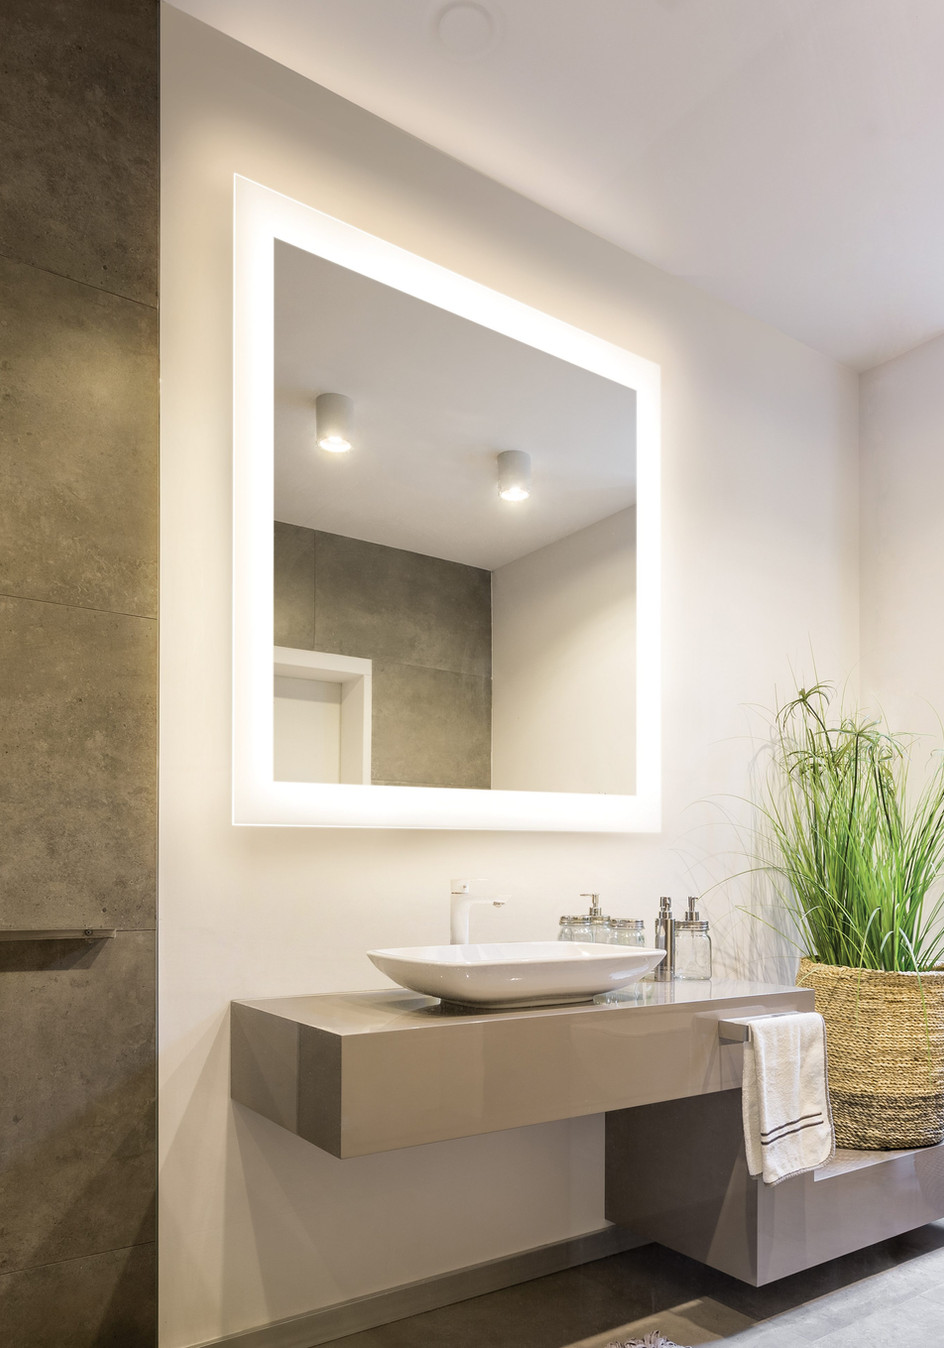 Silhouette - Lighted Mirror